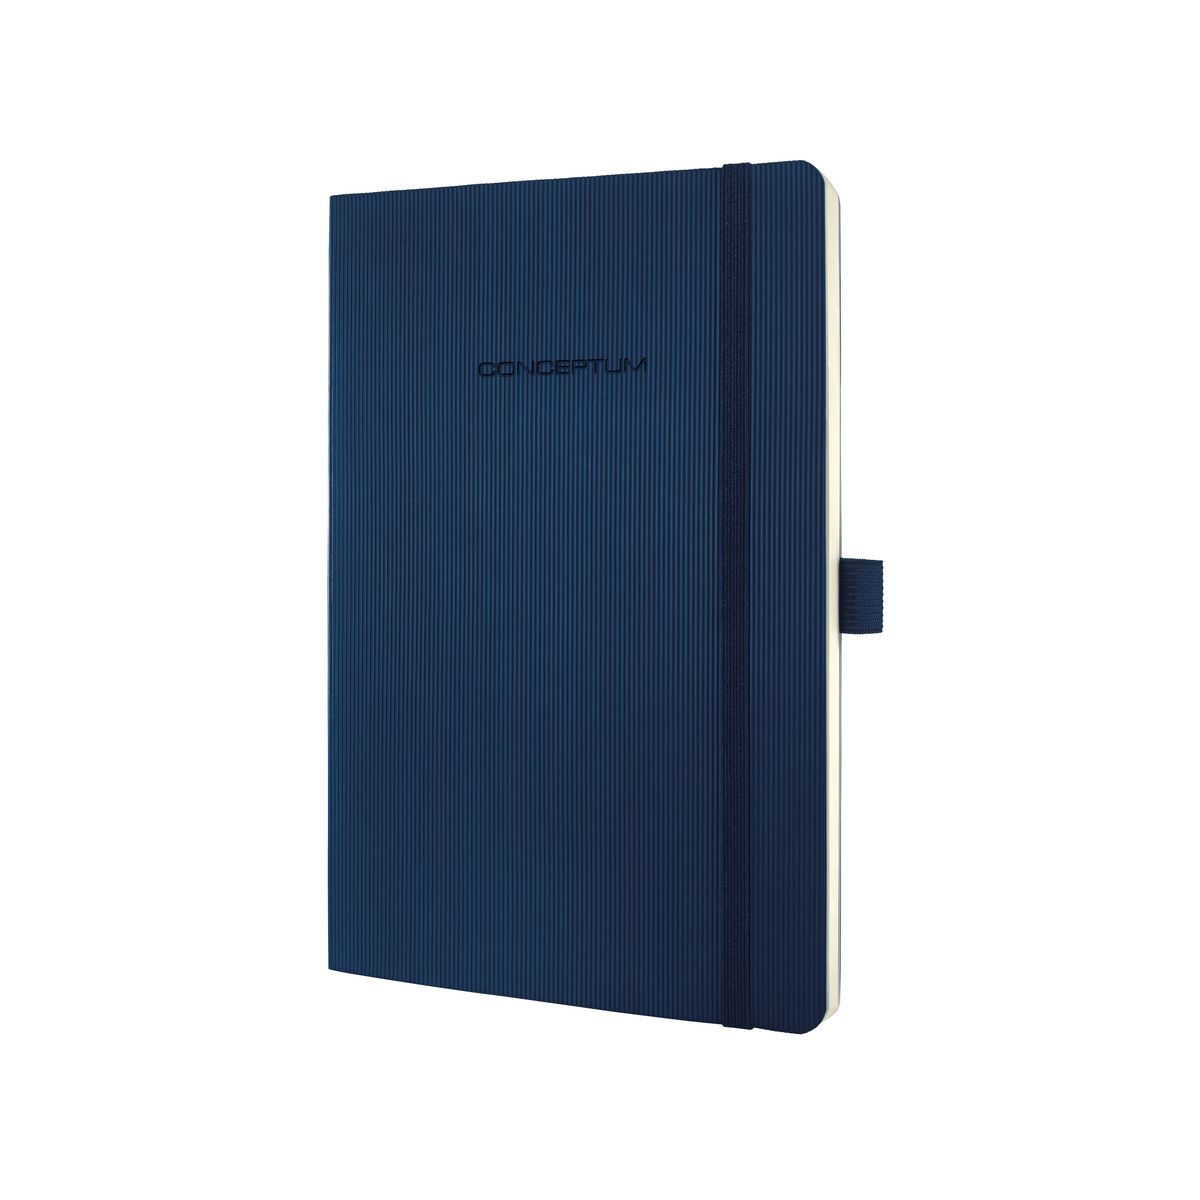 CONCEPTUM Softcover 135x210x14mm BL